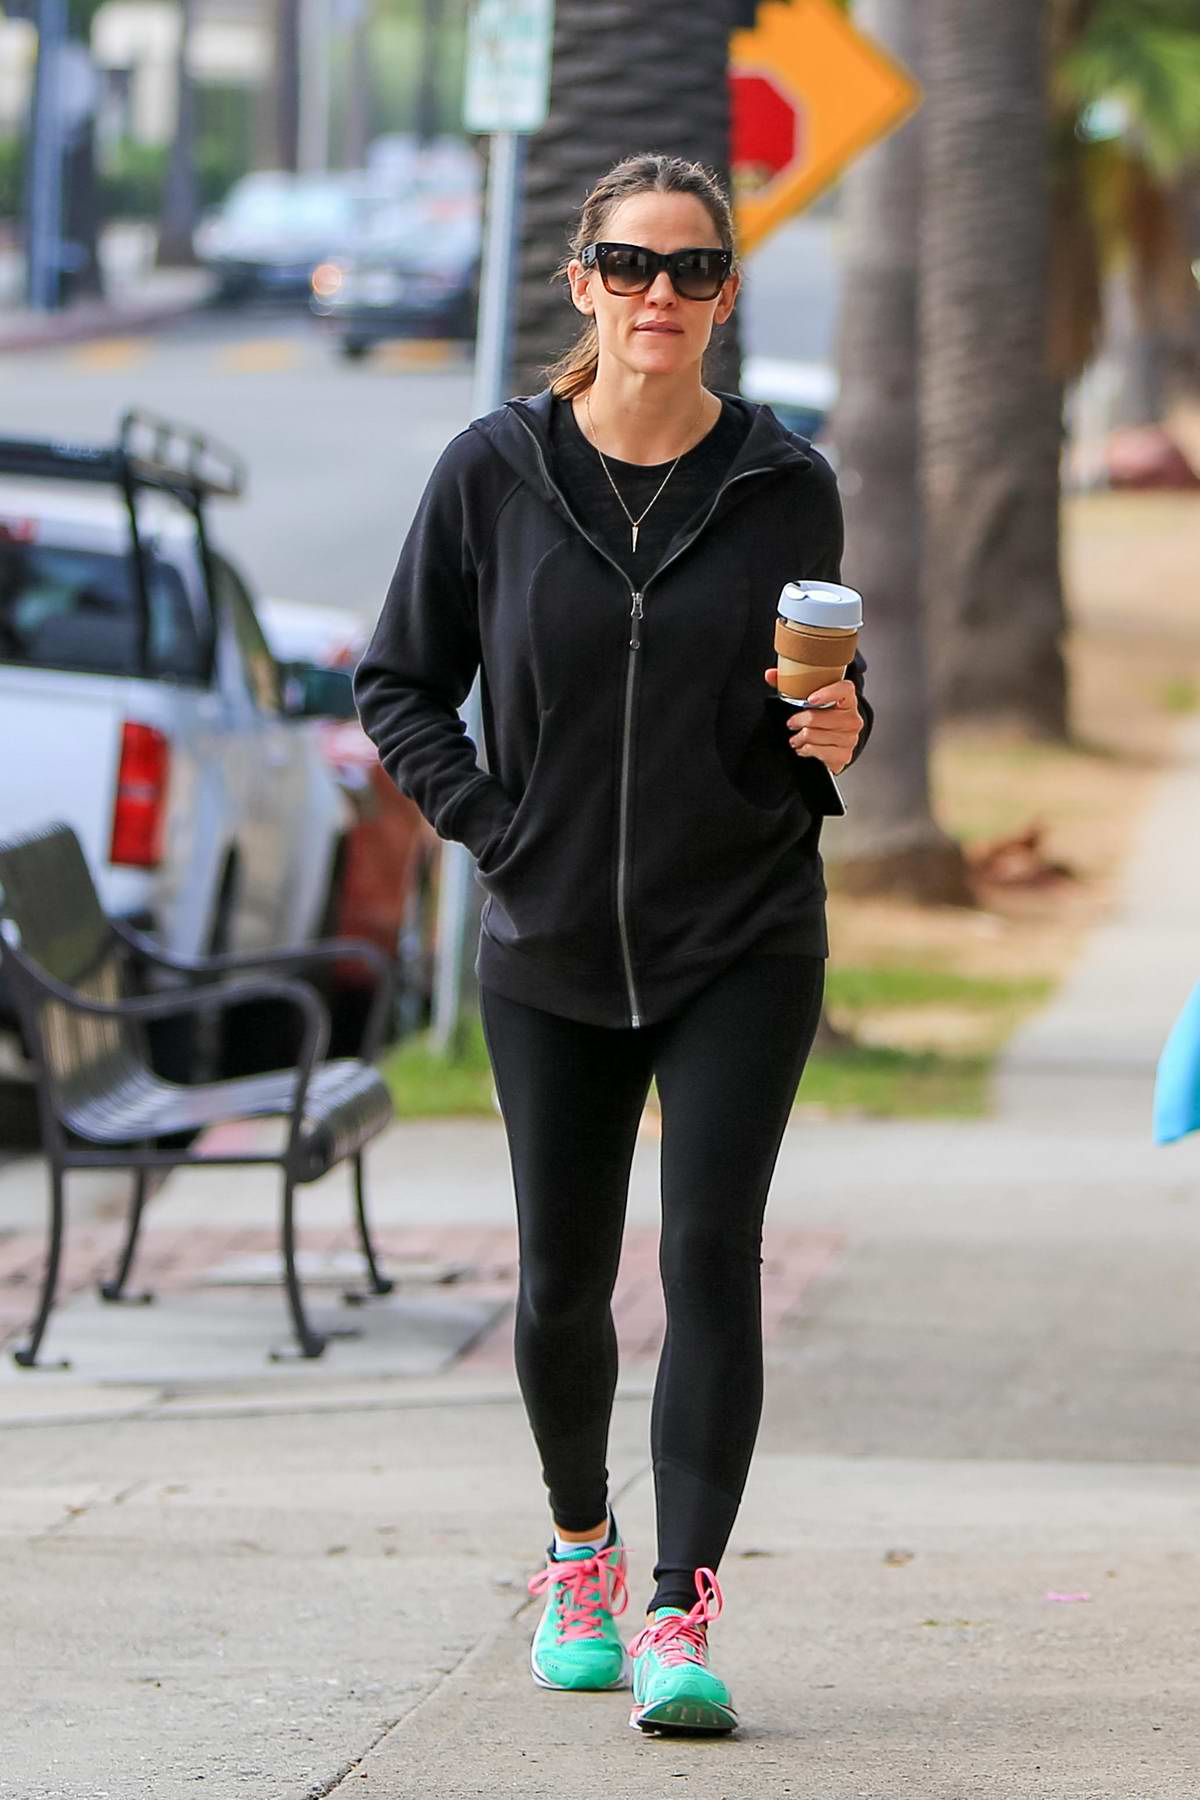 Jennifer Garner grabs her morning coffee while out for a morning walk with friend in Los Angeles